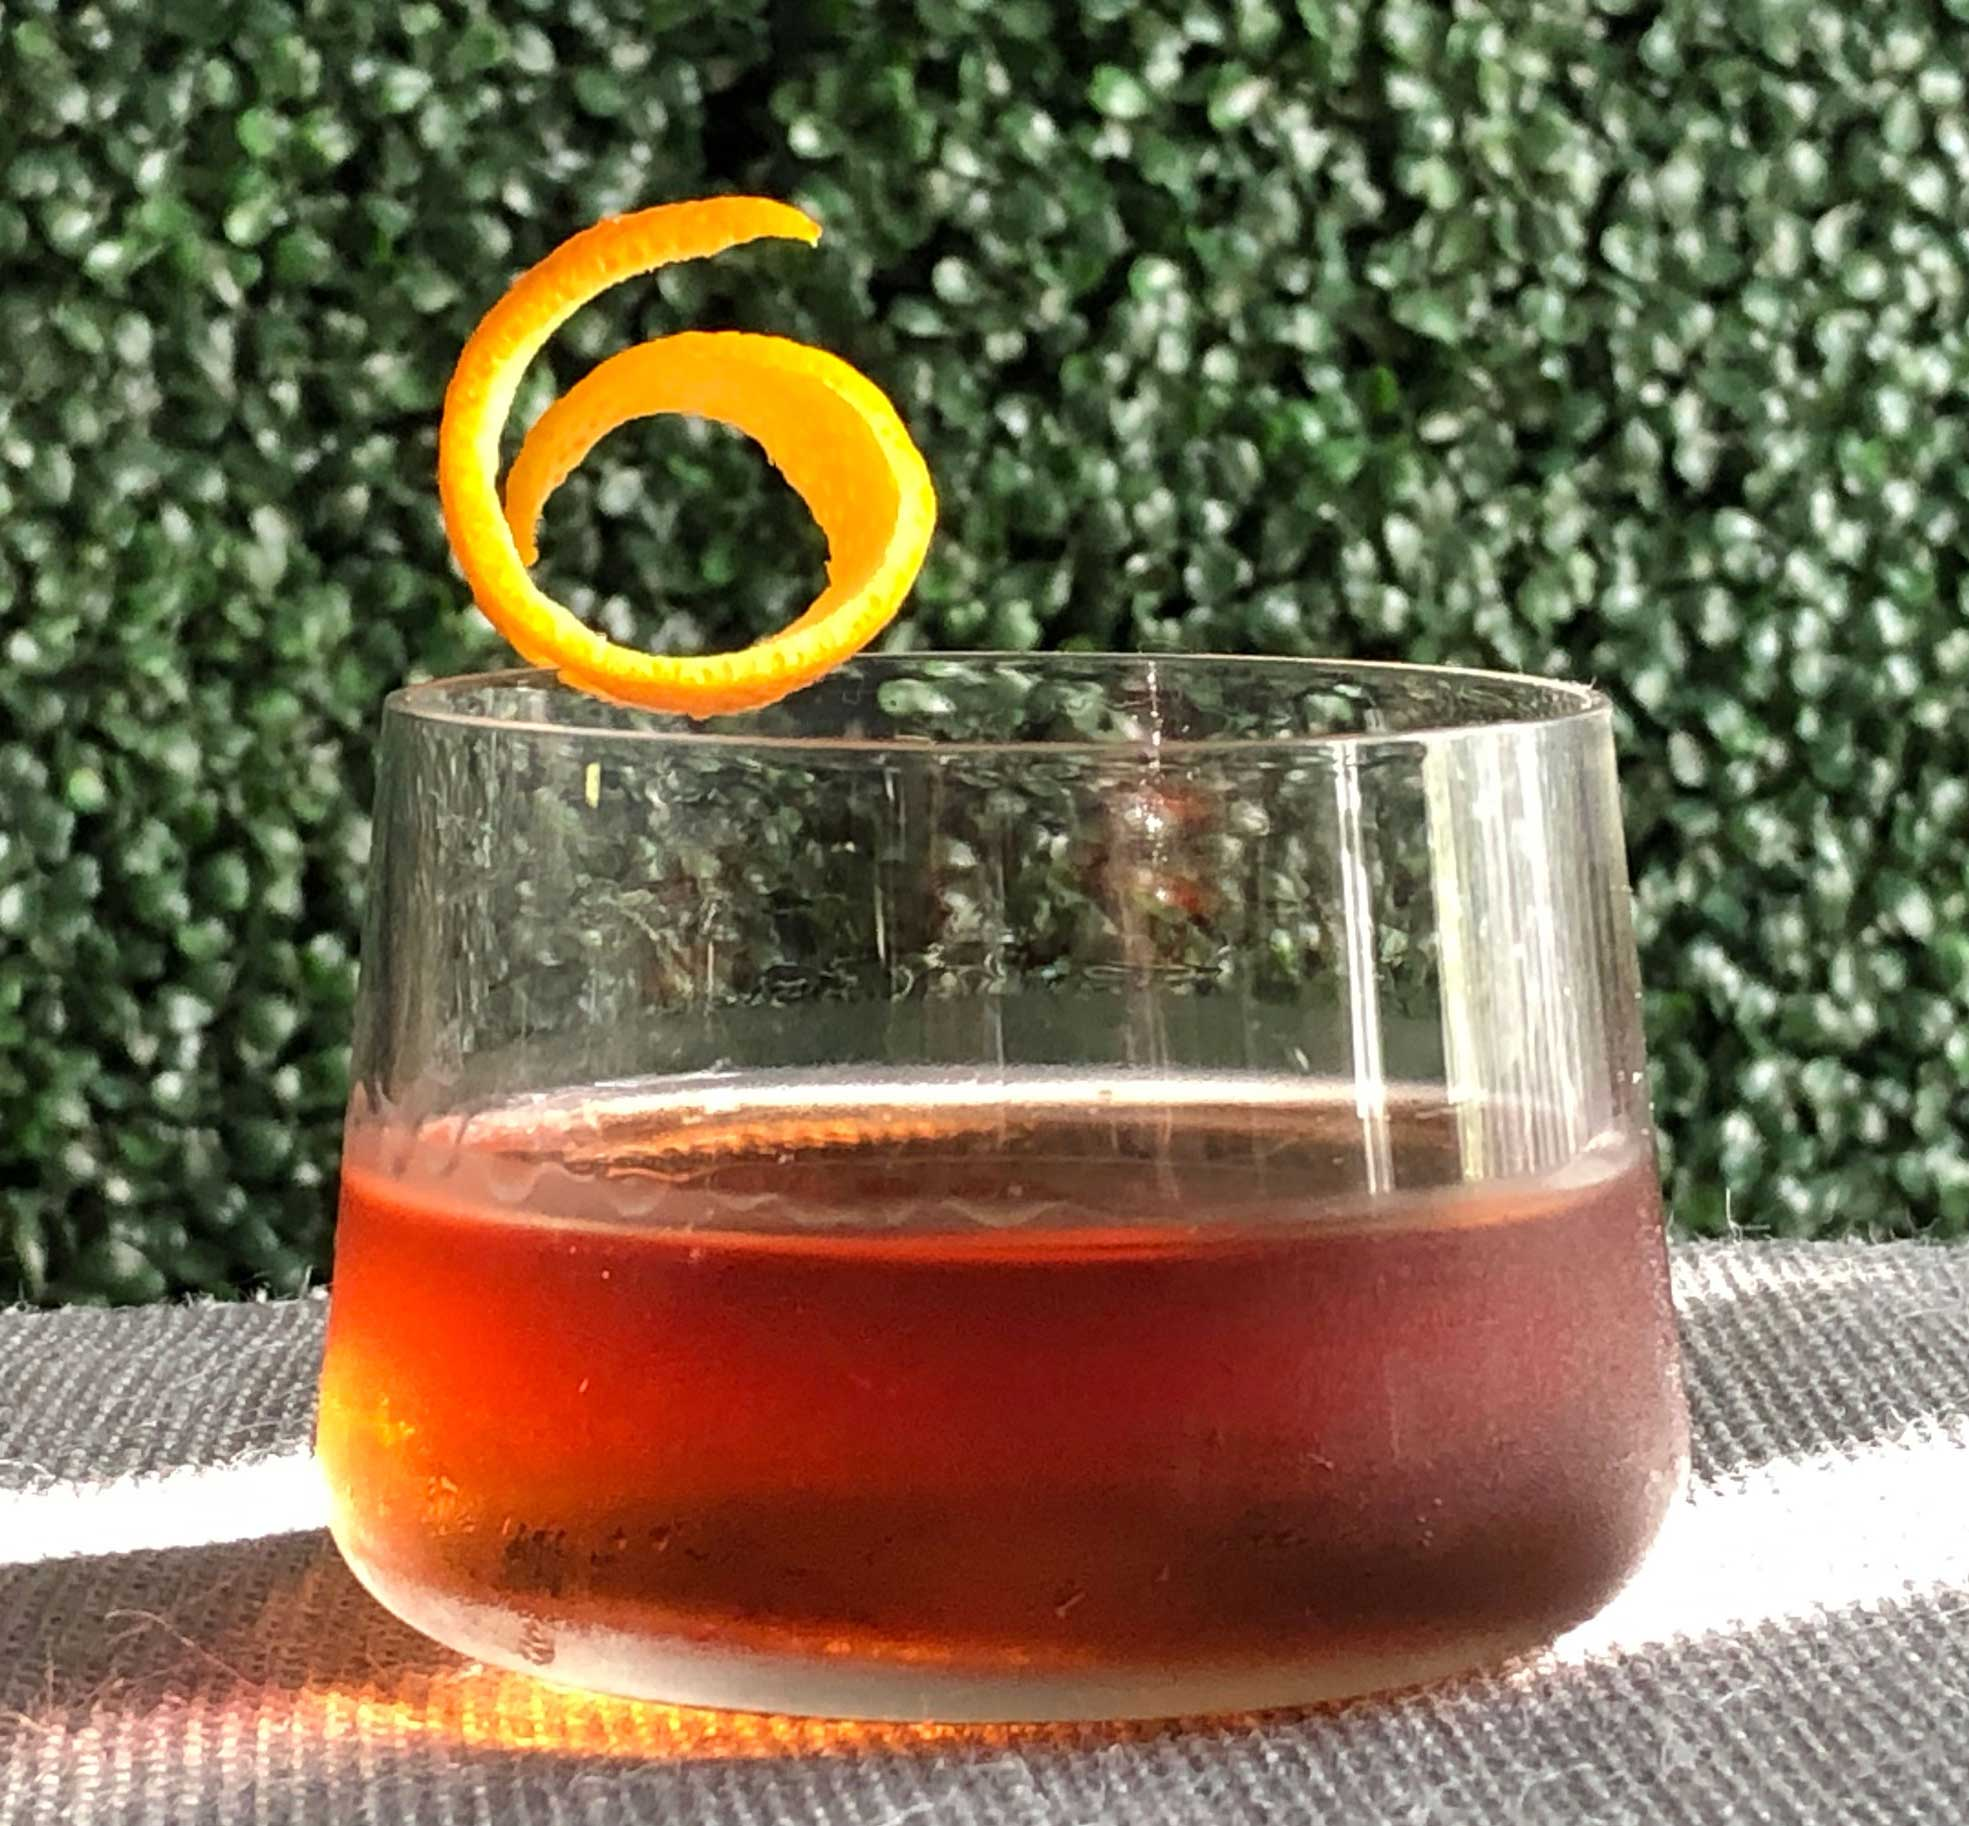 """An example of the Pat's Old Friend, the mixed drink (cocktail), adapted from the Pat's Special, Savoy Cocktail Book, featuring Bonal Gentiane-Quina, Hayman's Old Tom Gin, Mas Peyre Rancio Sec """"Le Démon de Midi"""", grenadine, and Rothman & Winter Orchard Apricot Liqueur; photo by Lee Edwards"""